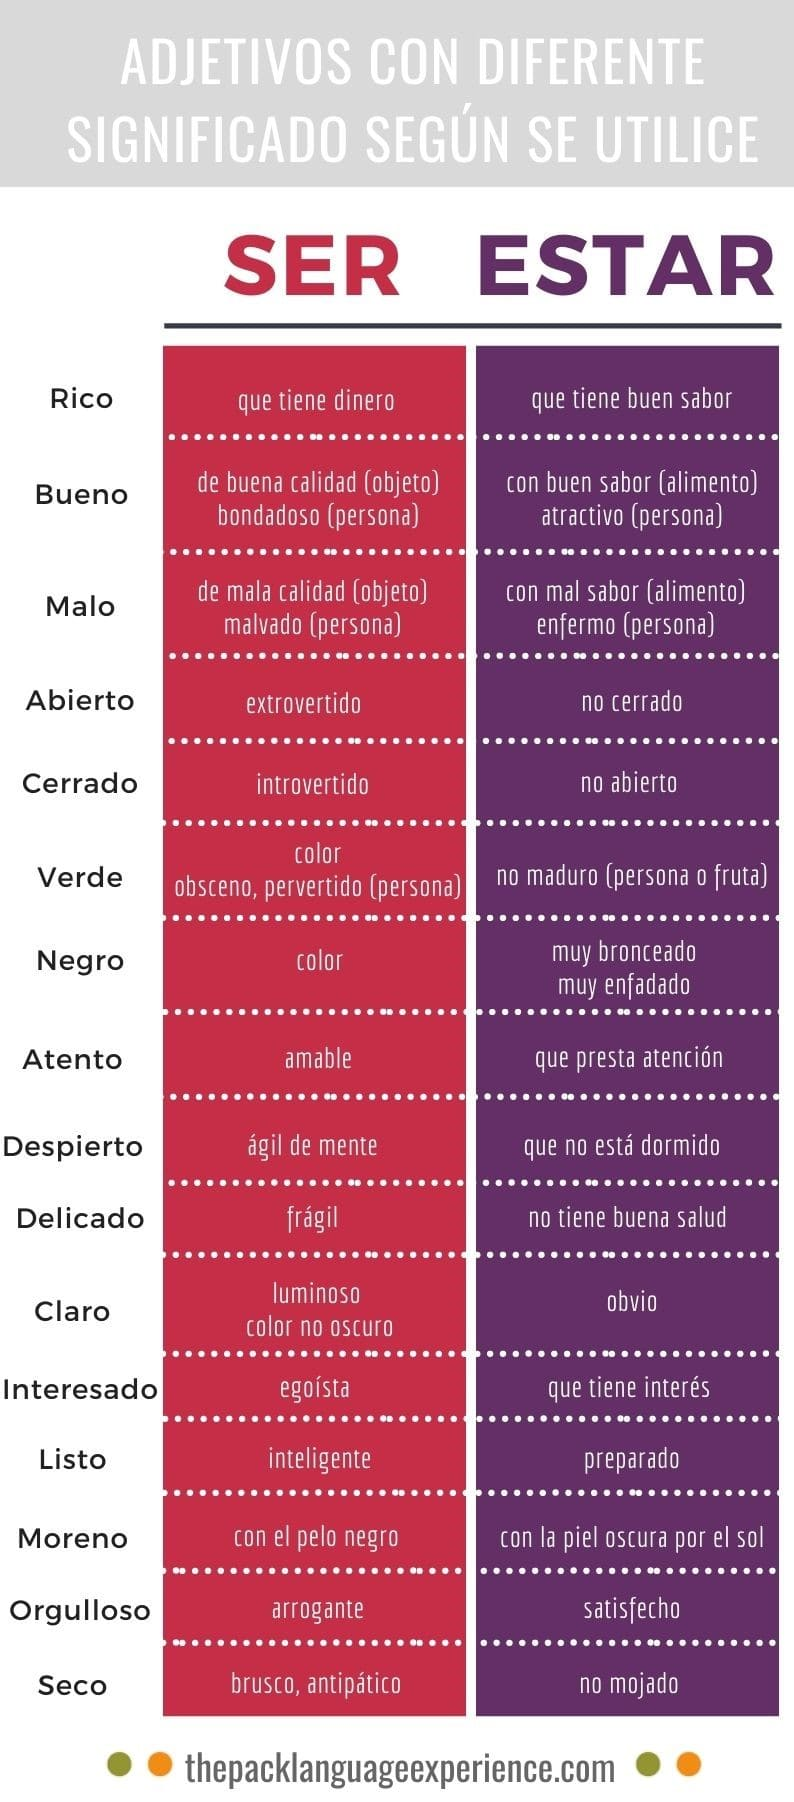 Adjectives with different meaning using ser or estar